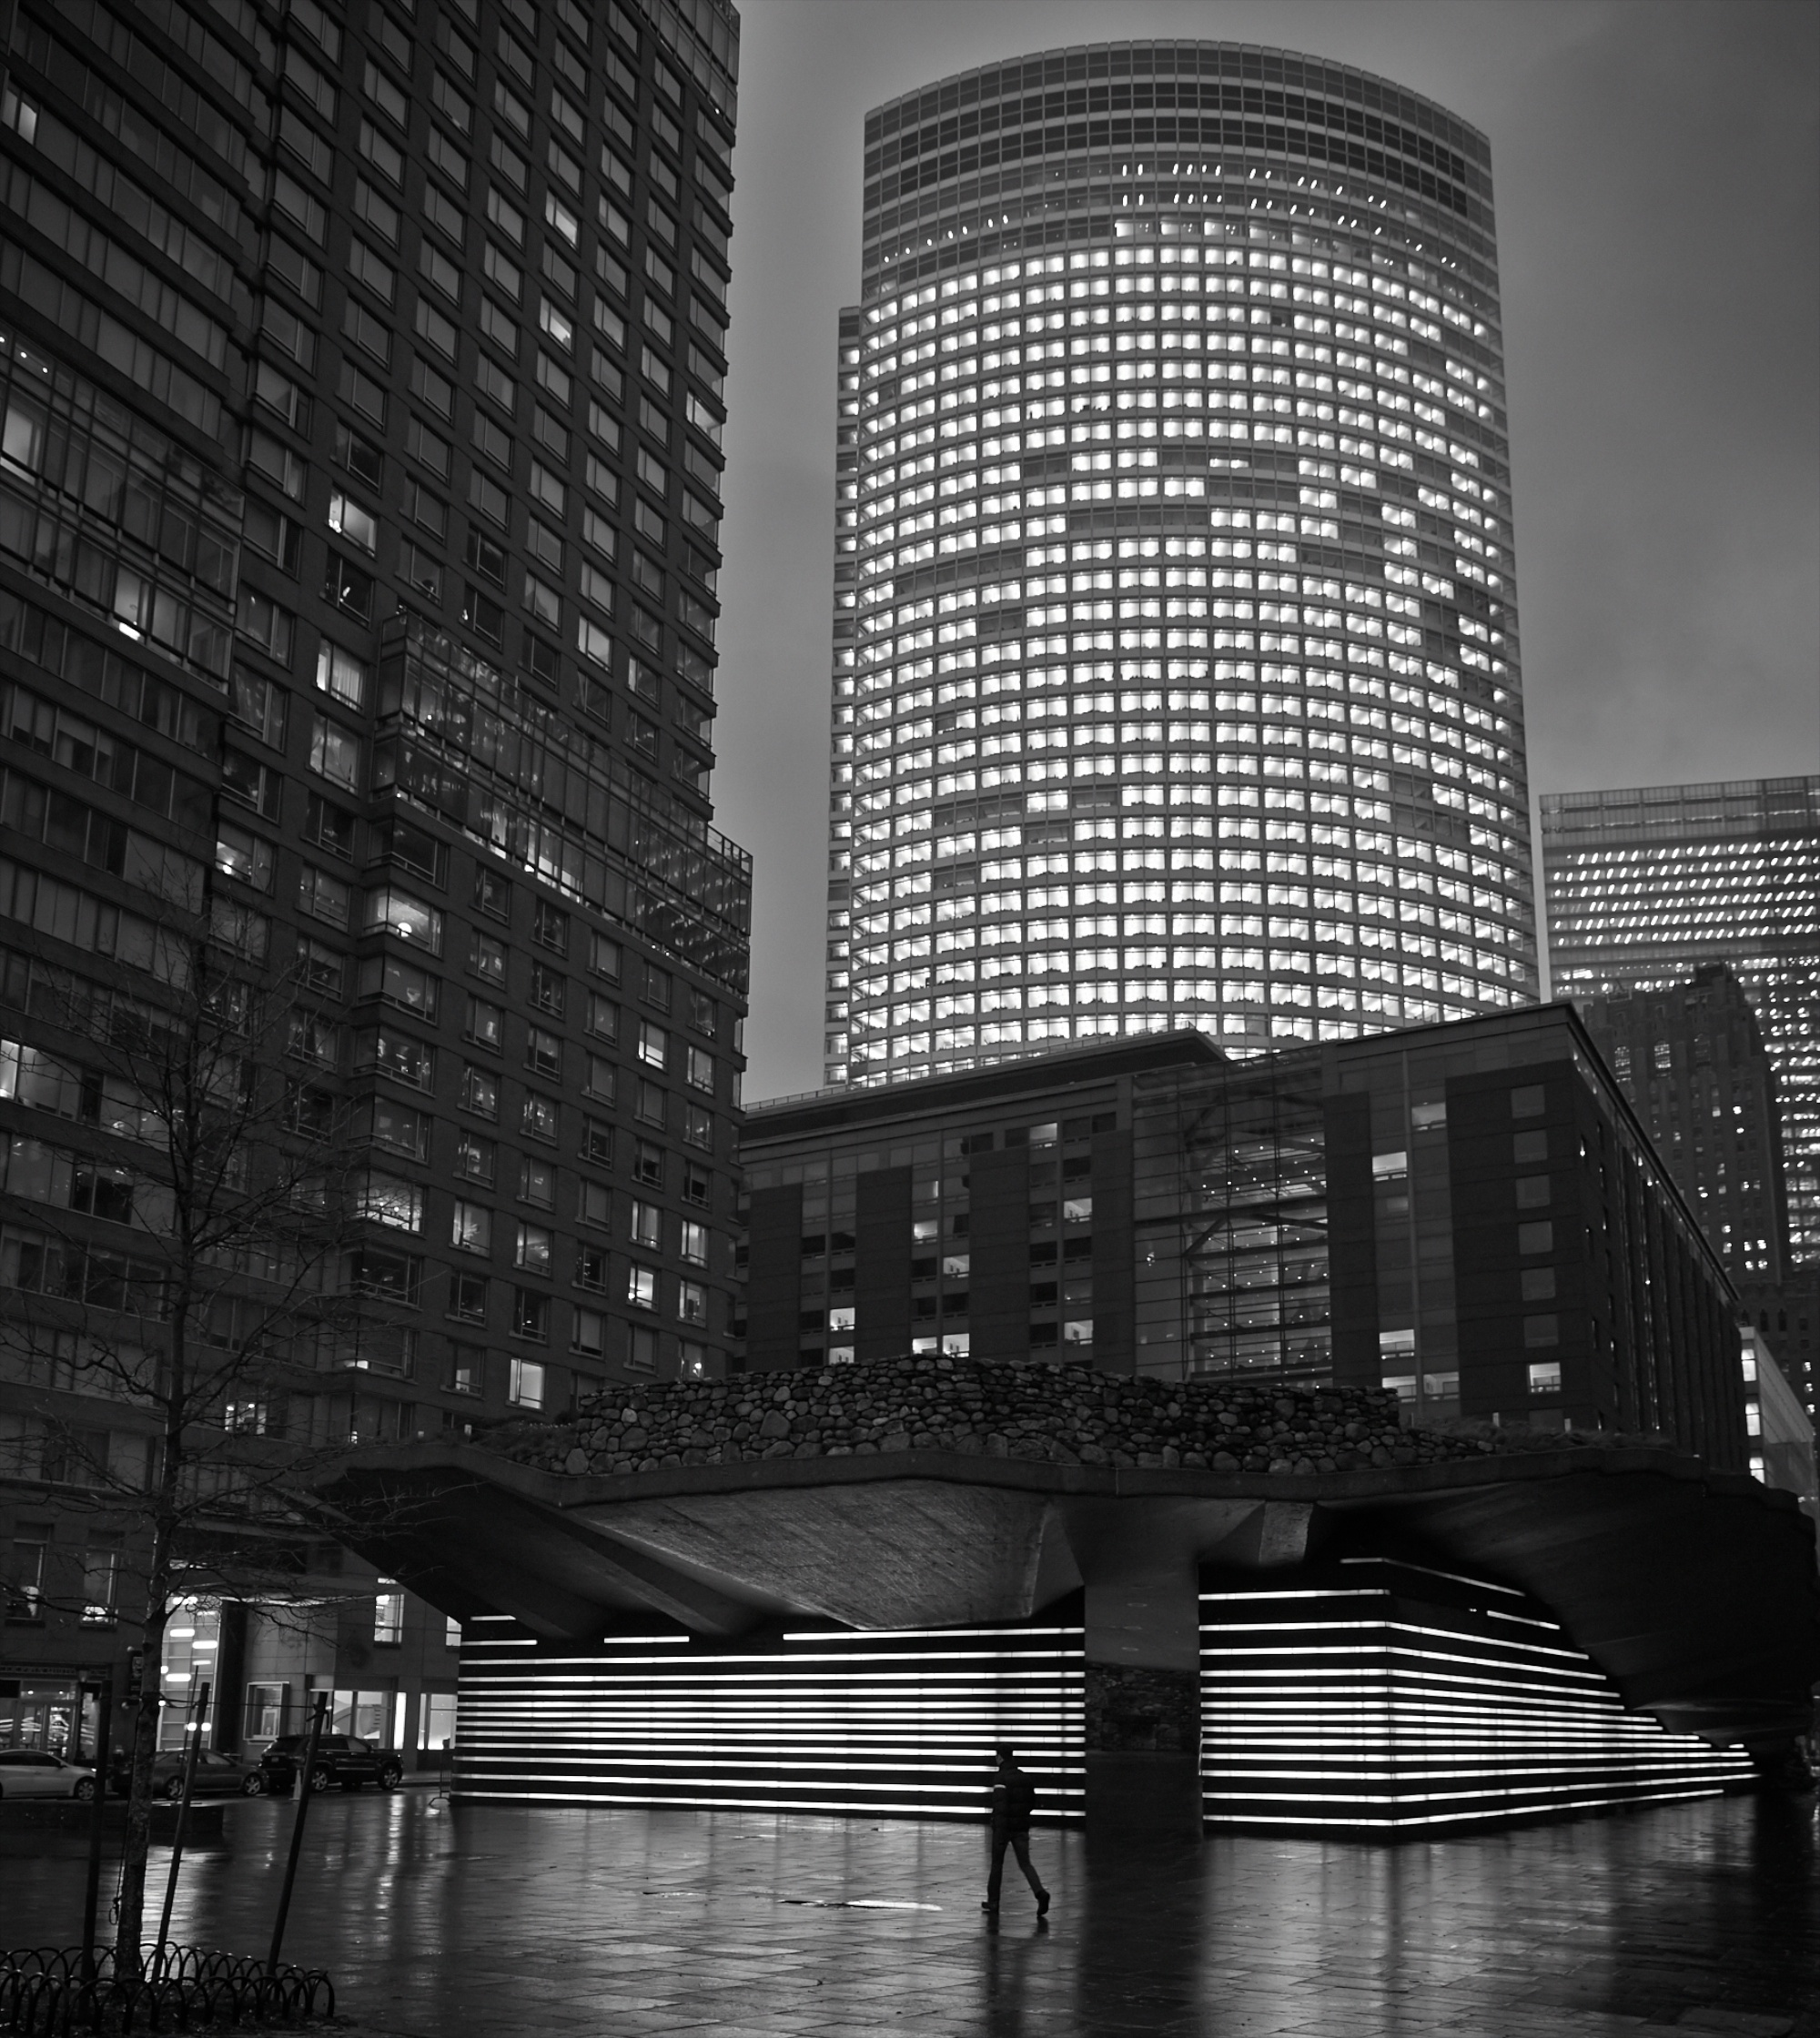 The  Irish Hunger Memorial , a public art installation in Battery Park City, lies in the shadow of the glowing headquarters of Goldman Sachs.